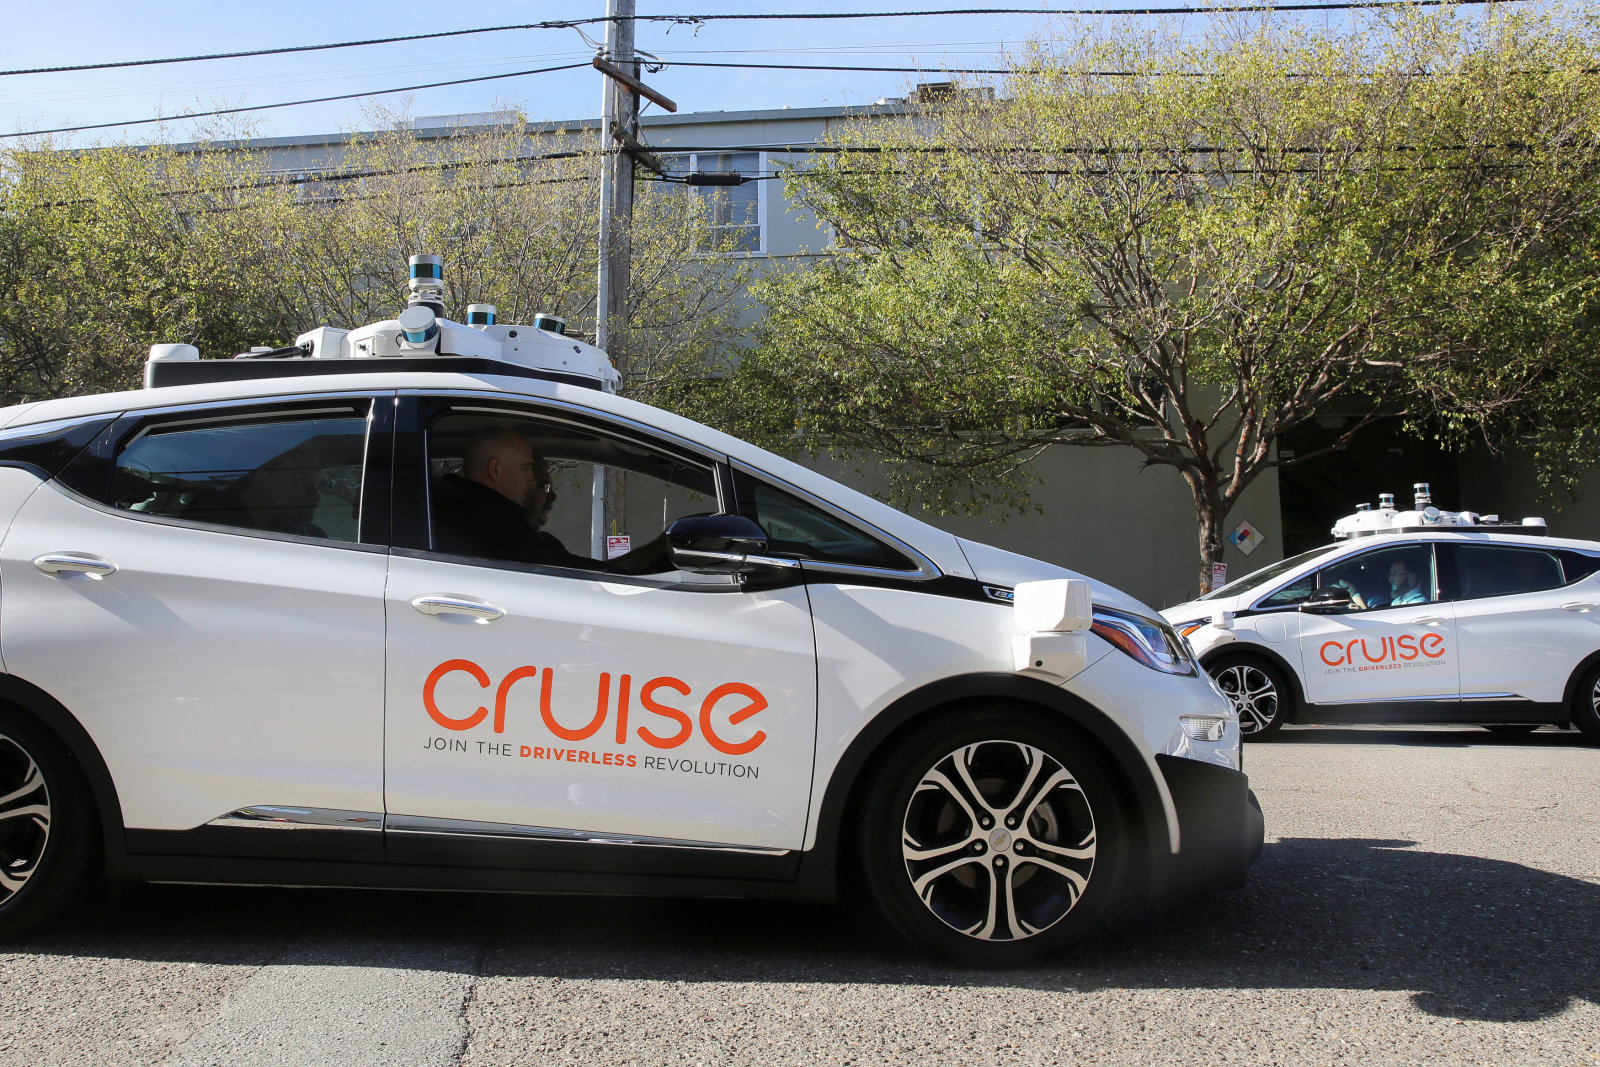 Two self-driving Chevy Bolt EV cars are seen during a media event by Cruise, GM's autonomous car unit,  in San Francisco, California, U.S. November 28, 2017. REUTERS/Elijah Nouvelage